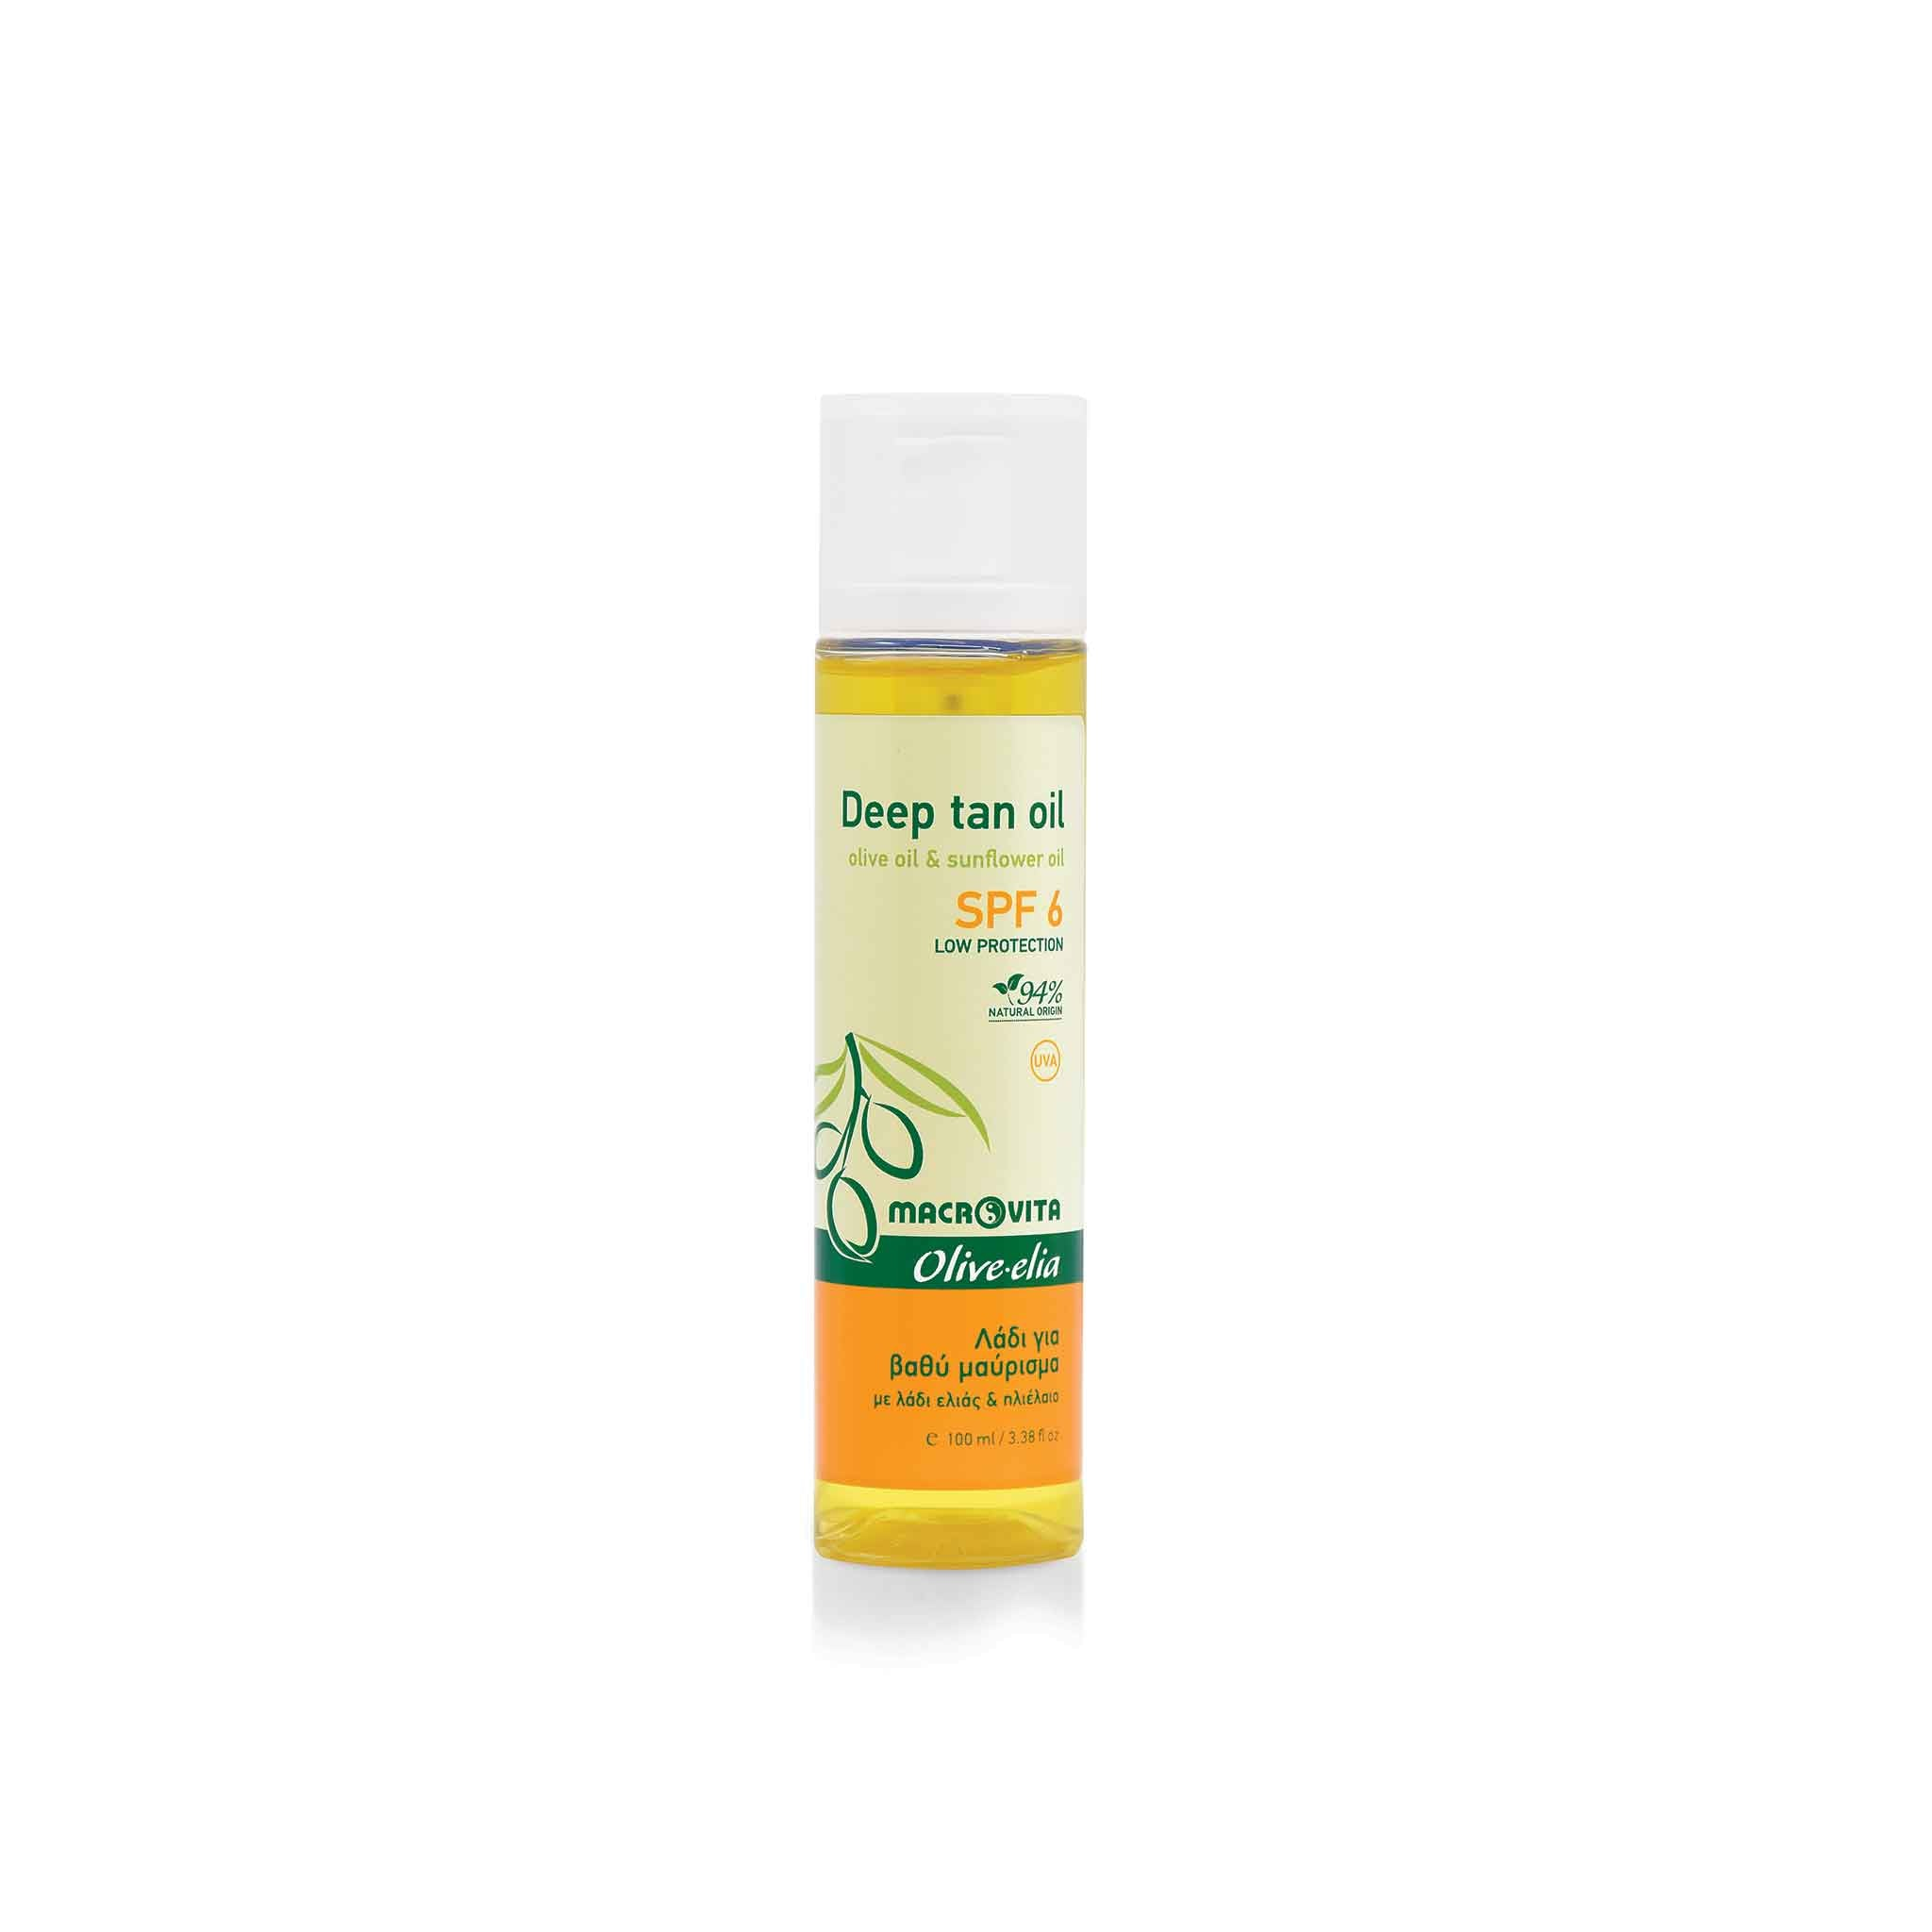 OLIVELIA DEEP TAN OIL SPF6